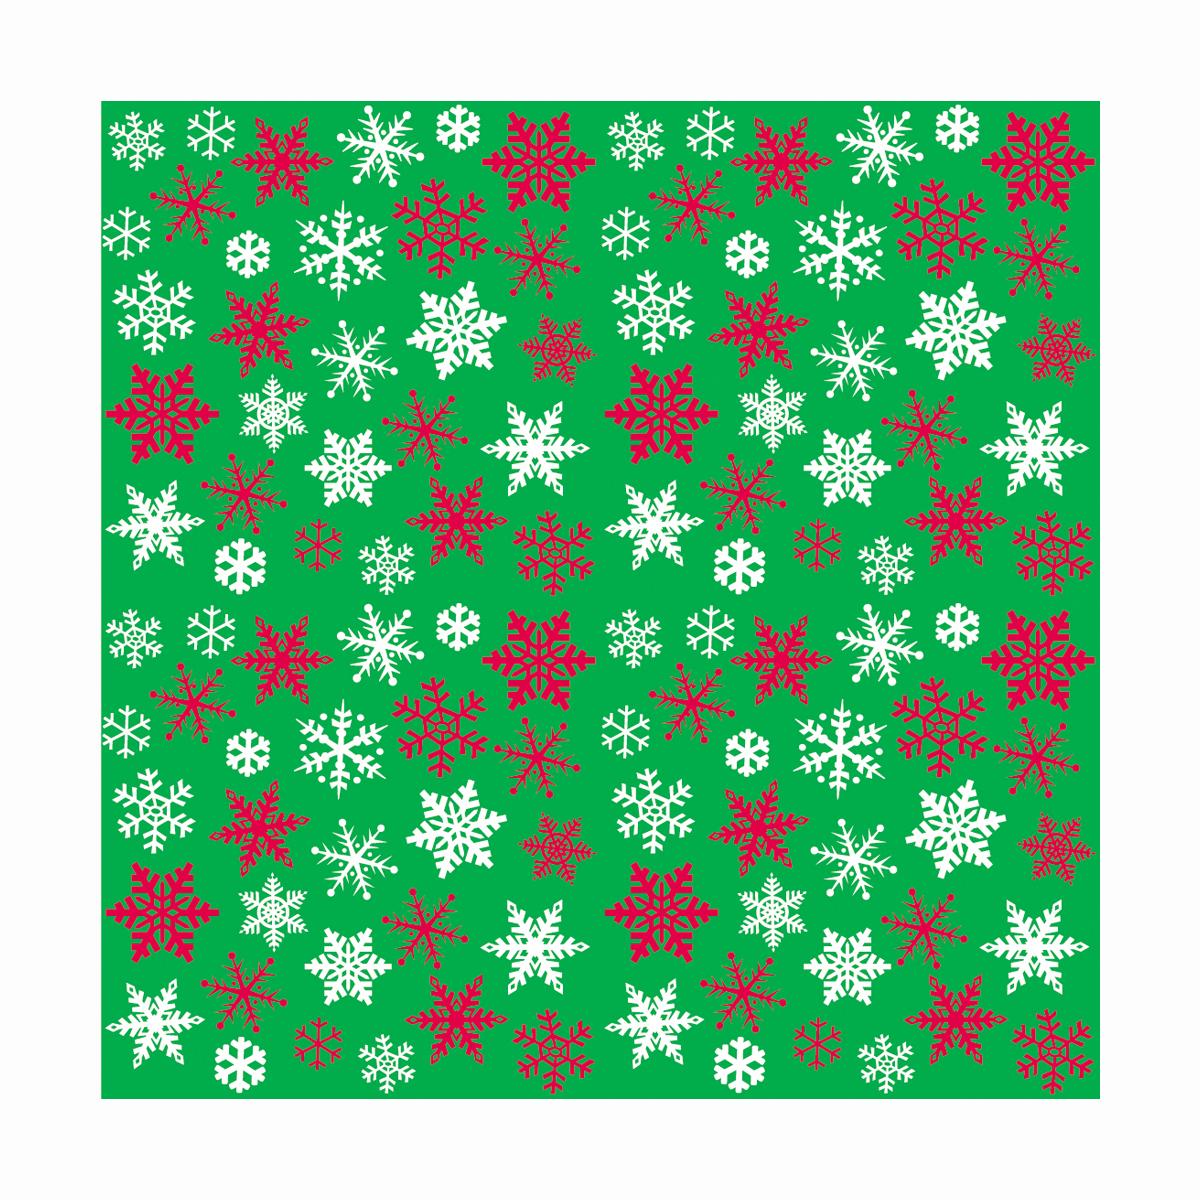 Snowflakes Holiday Wrapping Paper, 5 x 2.5ft, 1ct